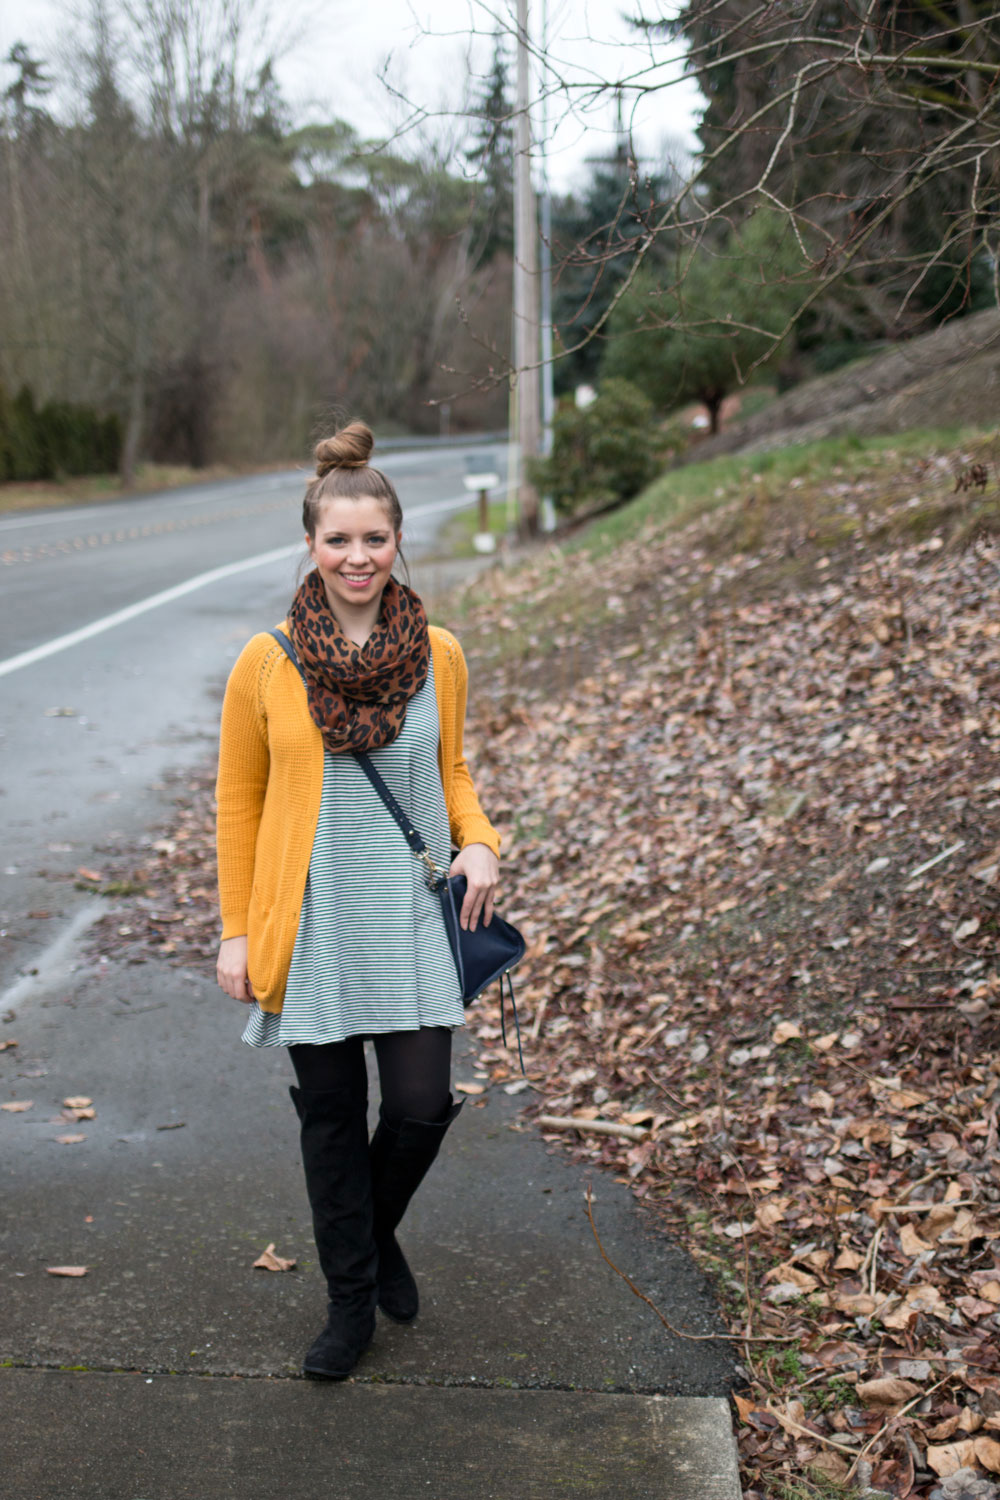 Mixing Patterns - Stripes and Animal Print Outfit / hellorigby seattle fashion blog